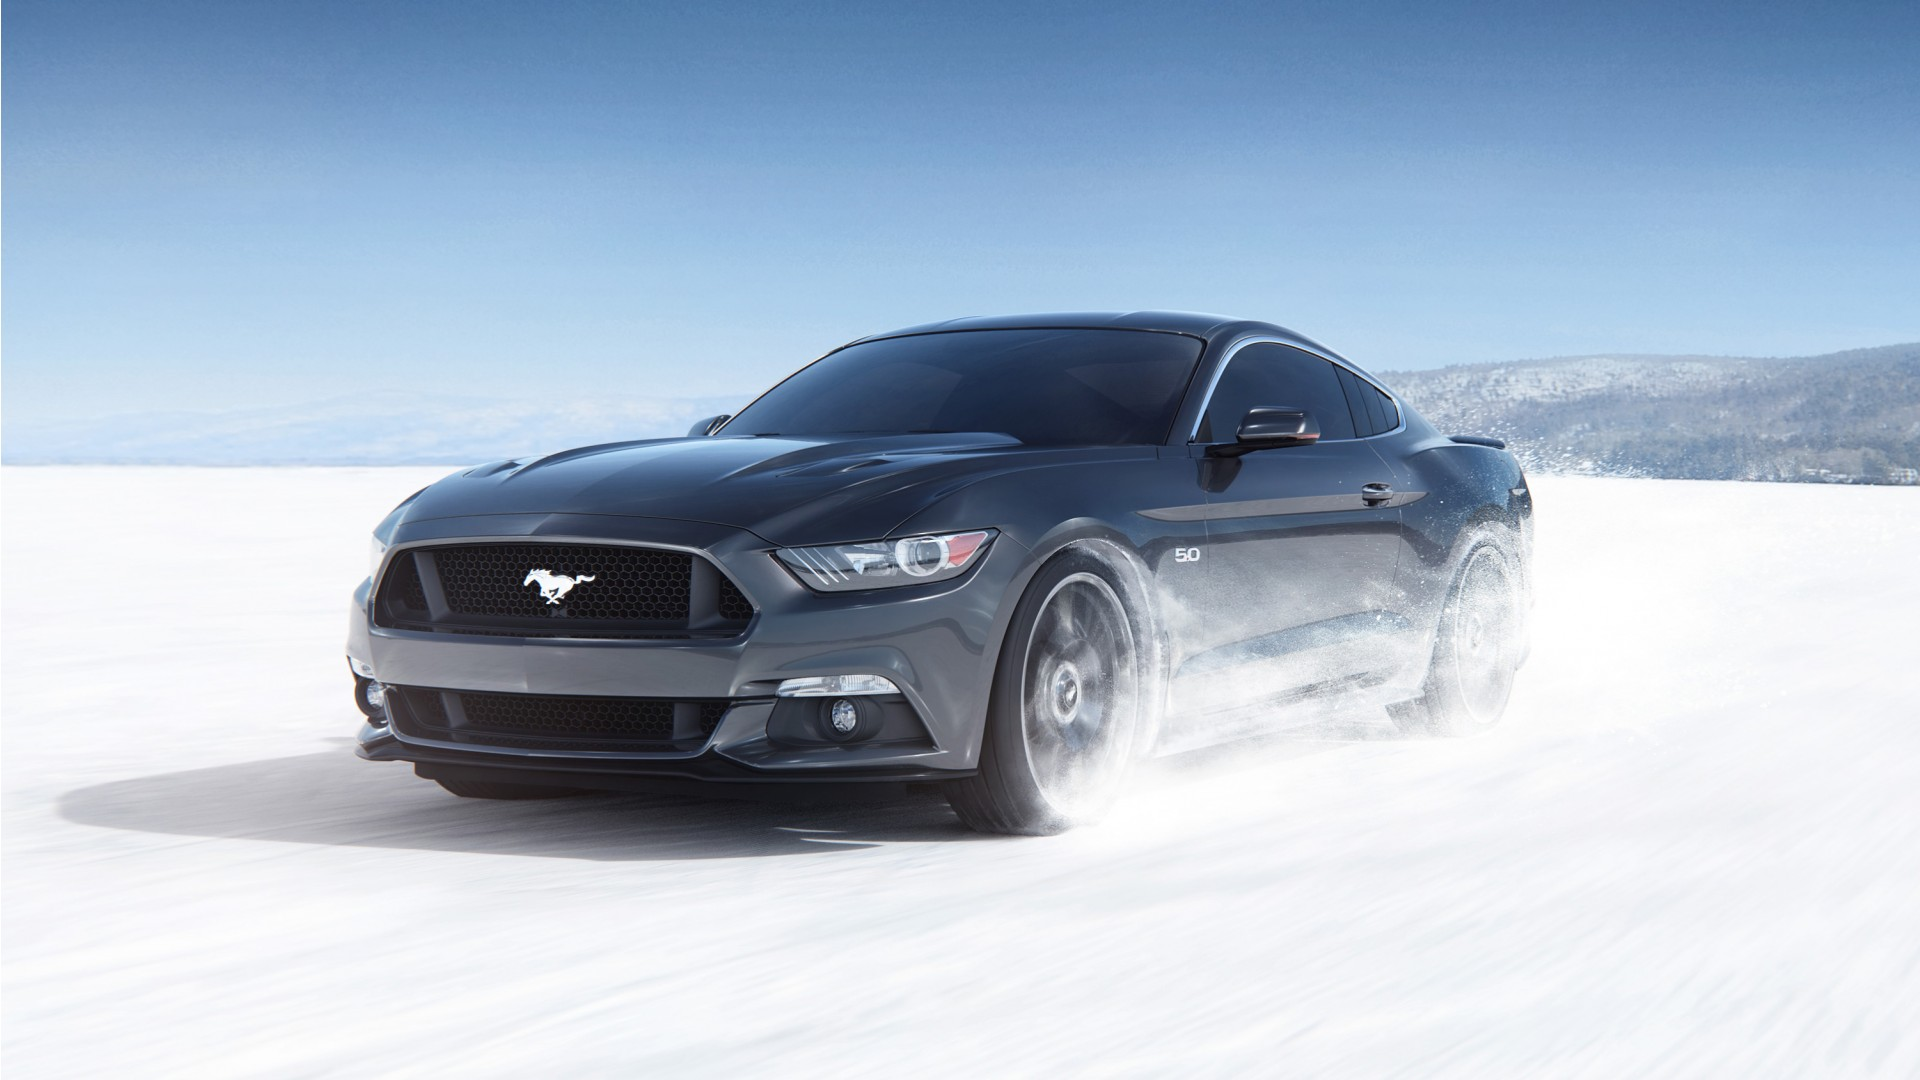 mustang 4k ford wallpapers hd 1080 1920 1366